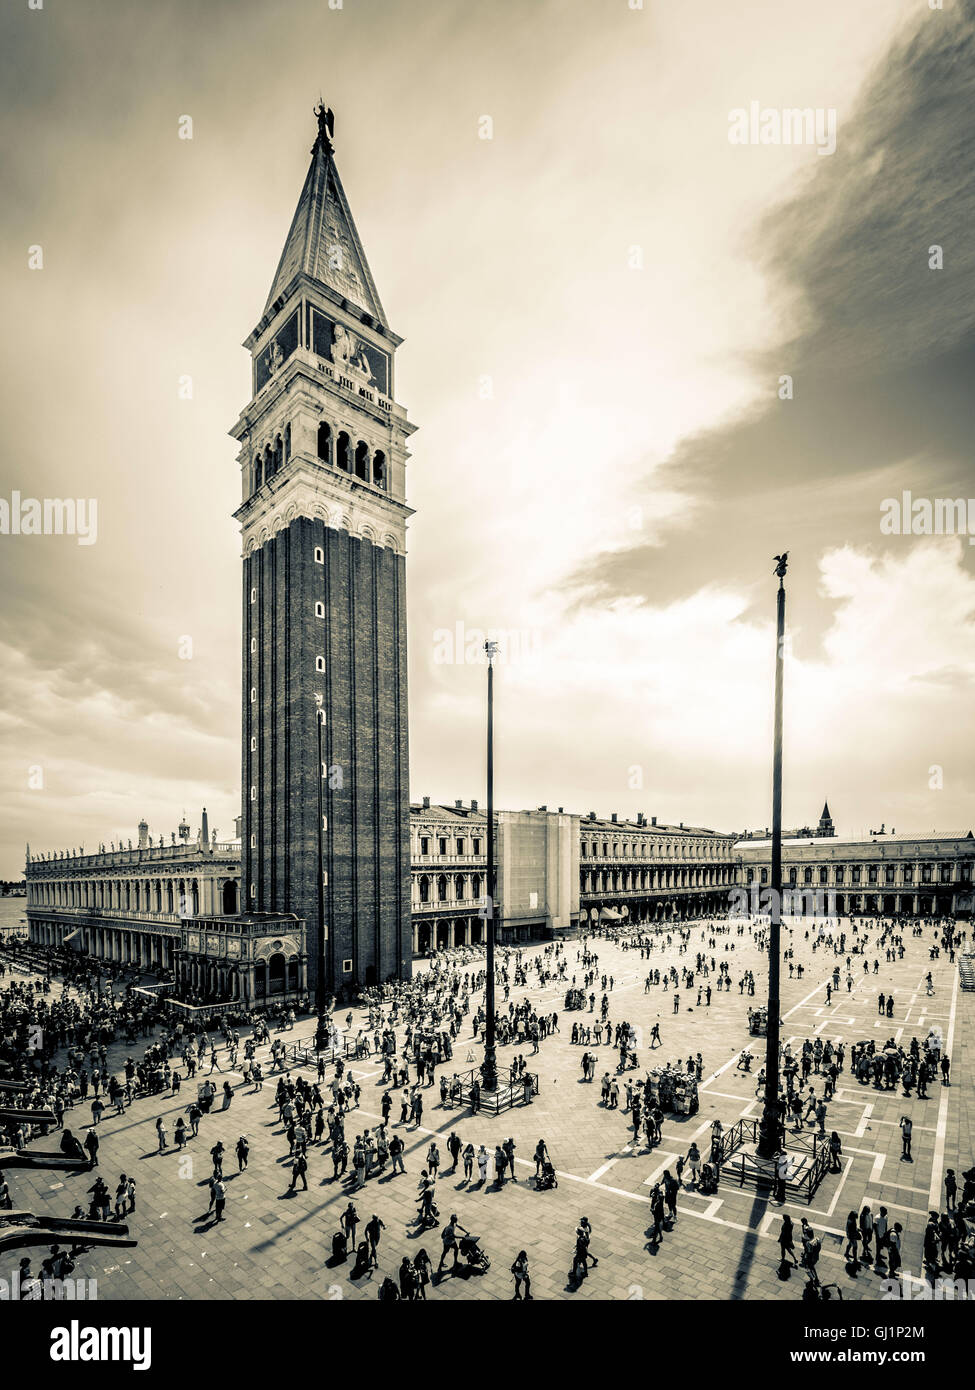 View from the loggia or balacony of St Mark's Basilica, of the tourist packed square below and nearby bell tower. - Stock Image